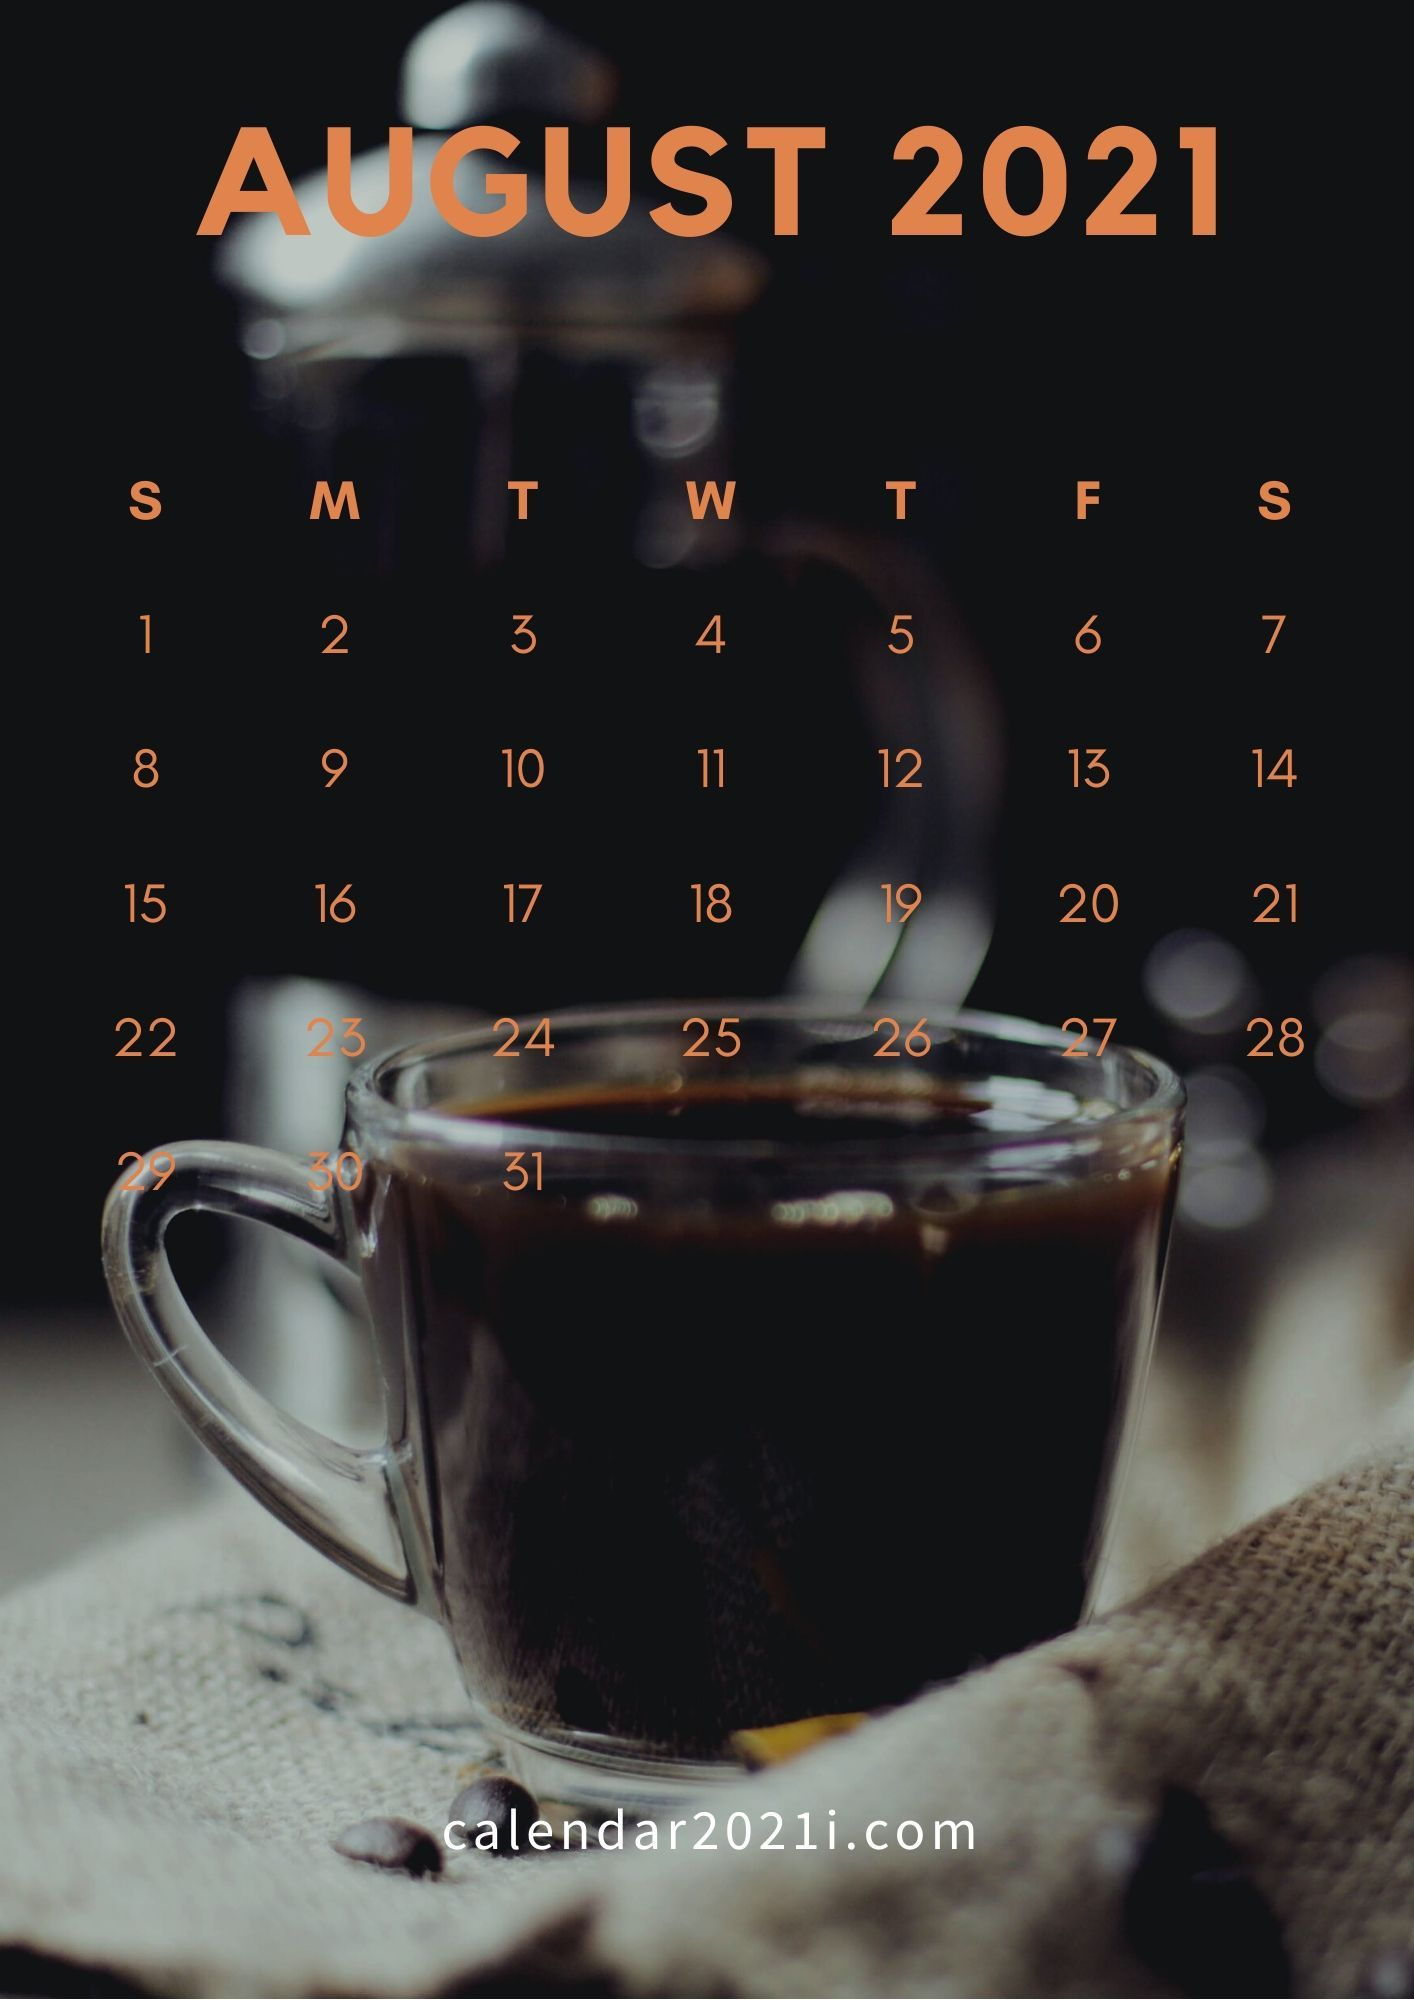 August 2021 Calendar iPhone Wallpaper in high definition Monthly 1414x2000